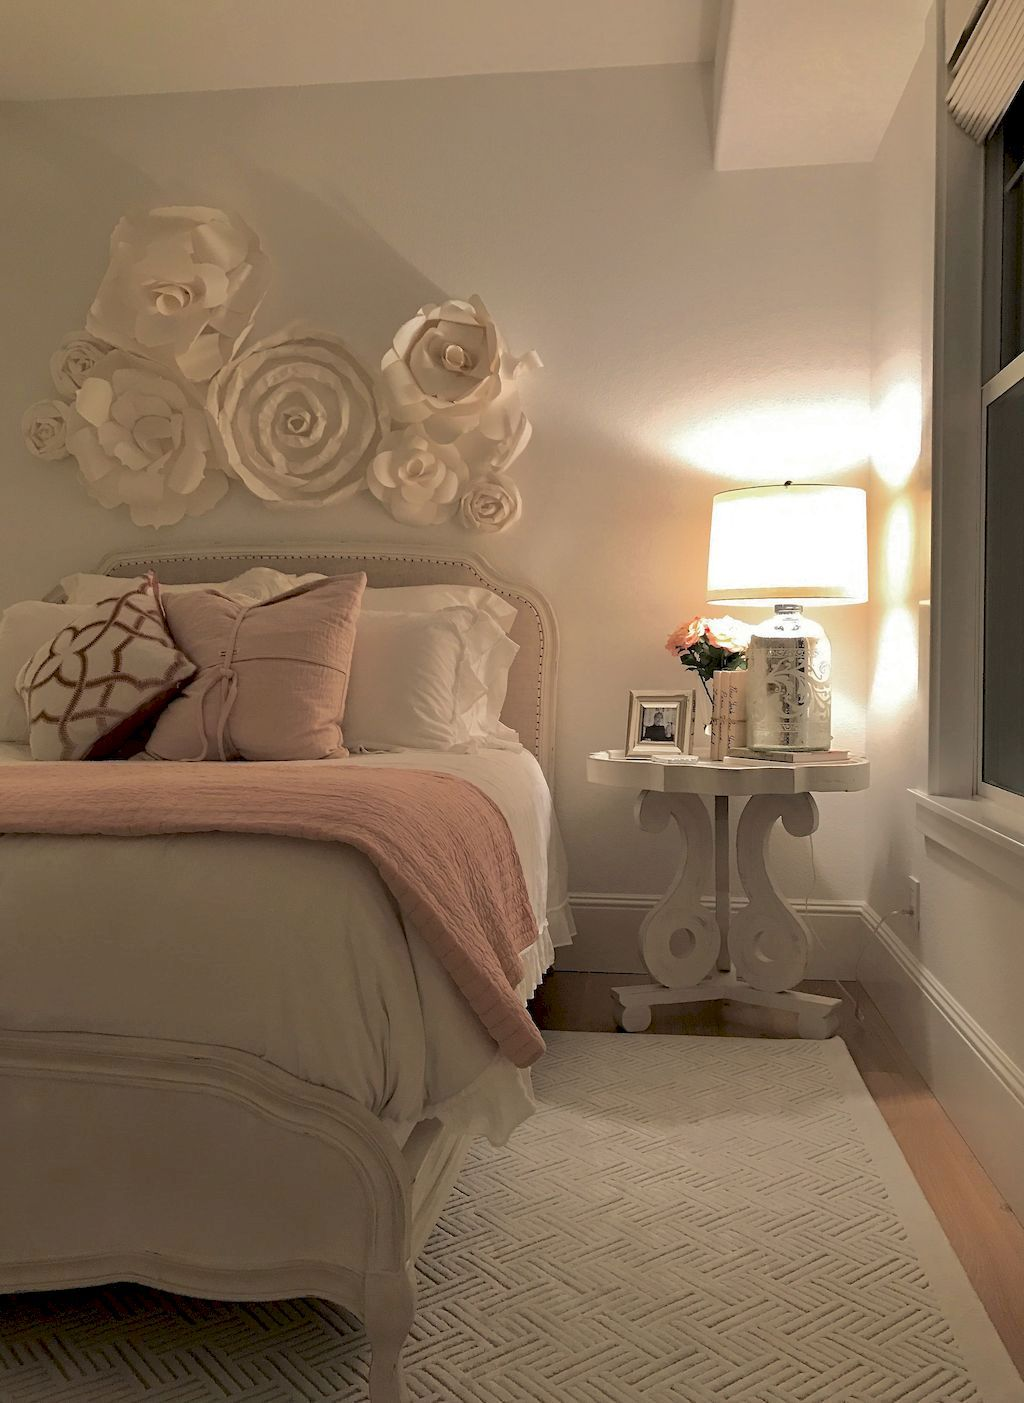 Pin By Kindra Levels On Spare Room Ideas Guest Bedroom Design